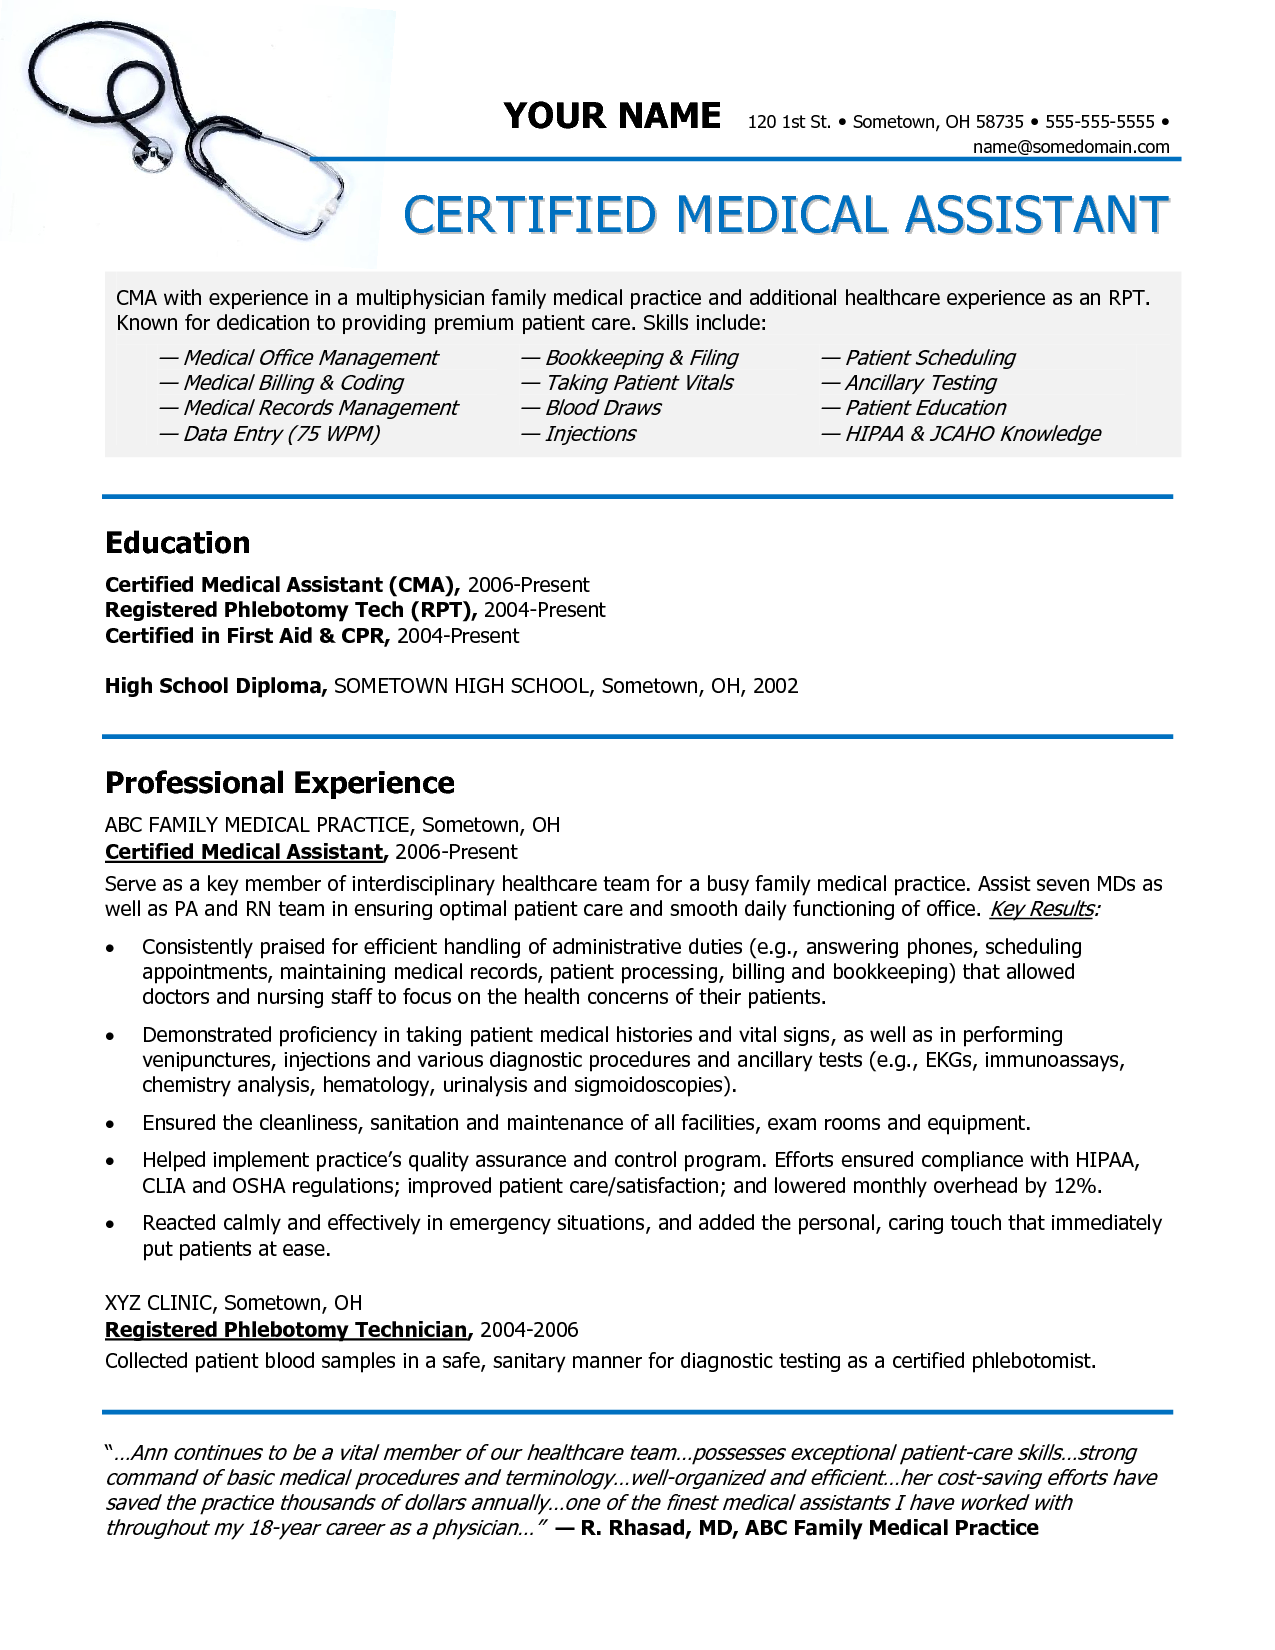 Medical Assistant Resume Entry Level Examples 18 Medical Assistant .  Examples Of Medical Resumes